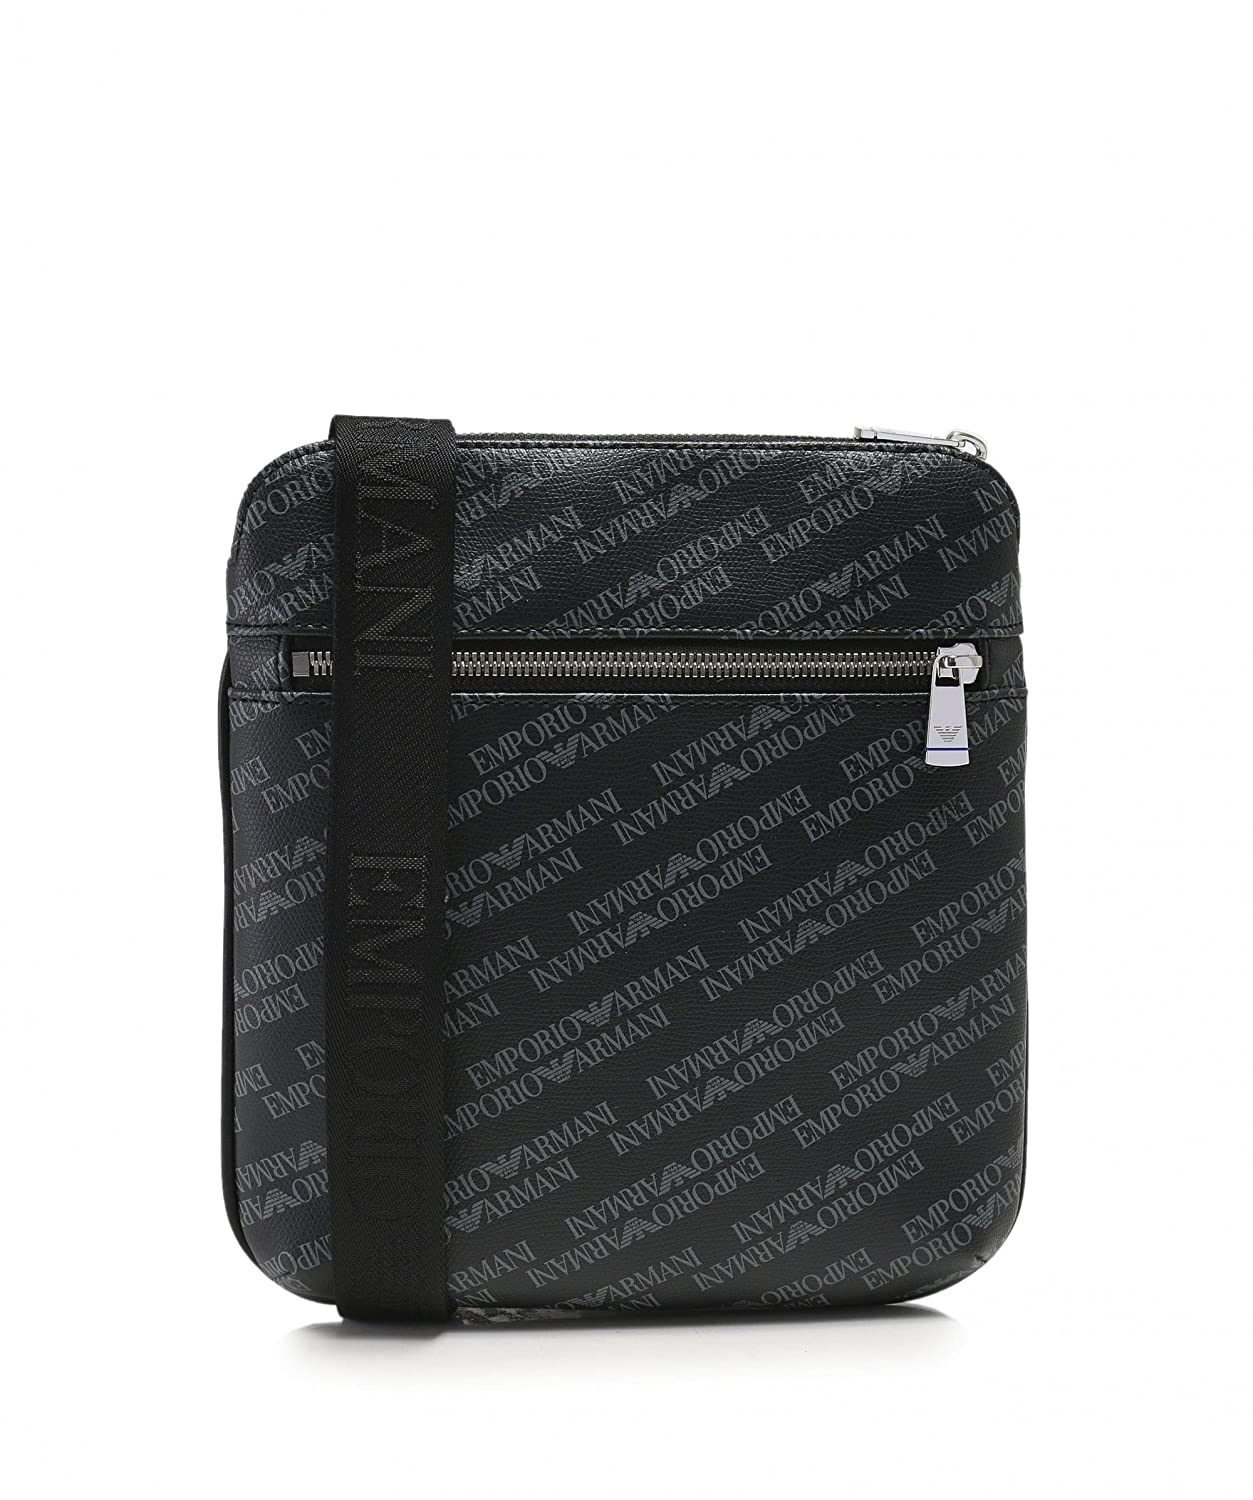 141905f5aeff8 EMPORIO ARMANI Logo Print Pouch Black One Size  Armani  Amazon.co.uk   Clothing